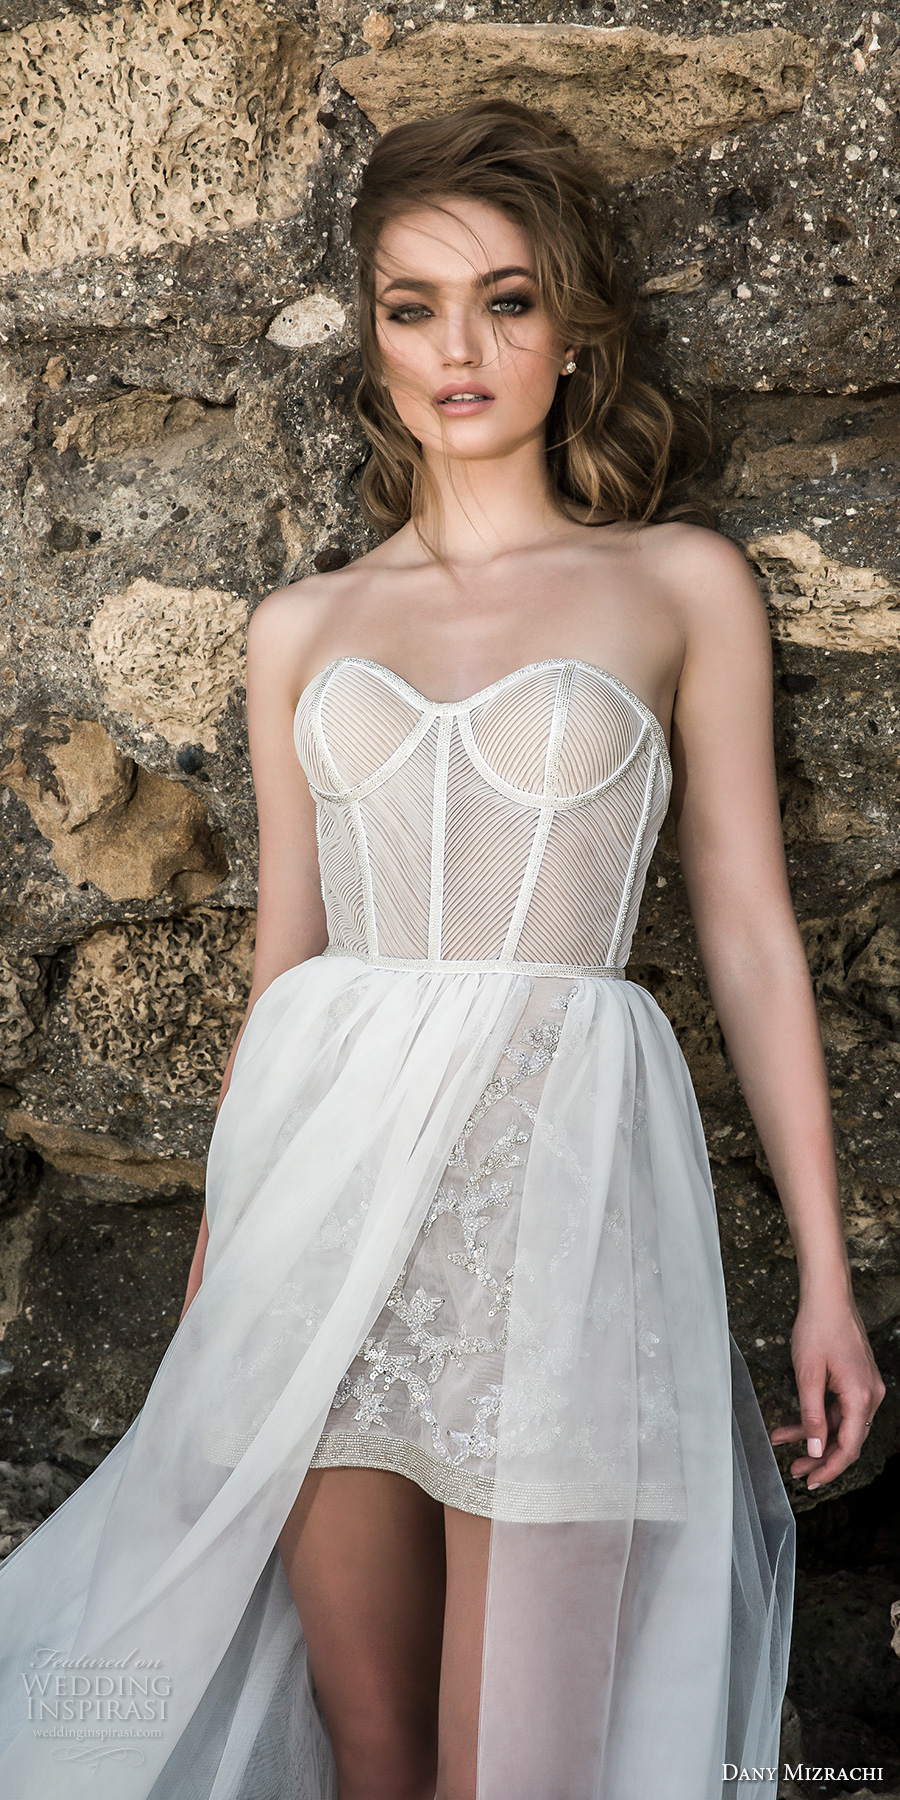 Dany mizrachi 2018 wedding dresses wedding inspirasi for Best bustier for strapless wedding dress